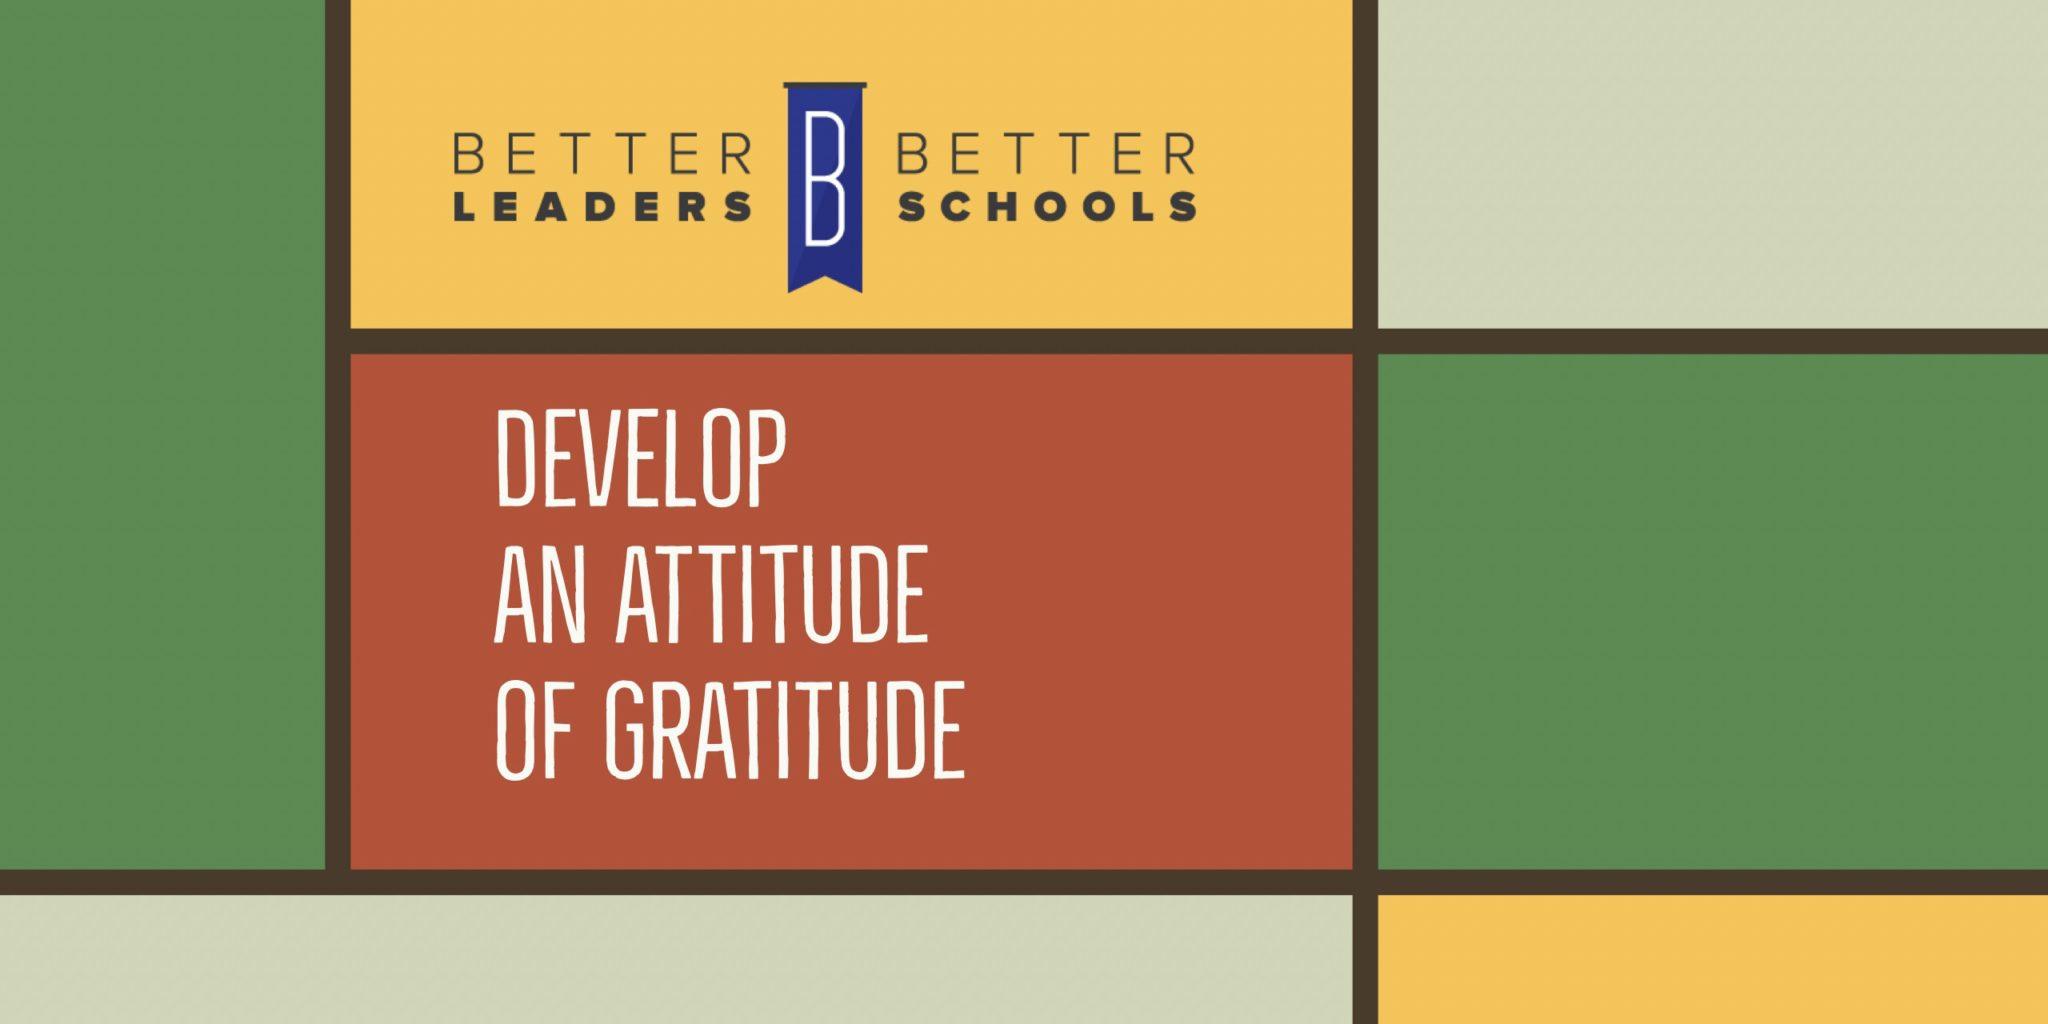 implement tactics to develop an attitude of gratitude